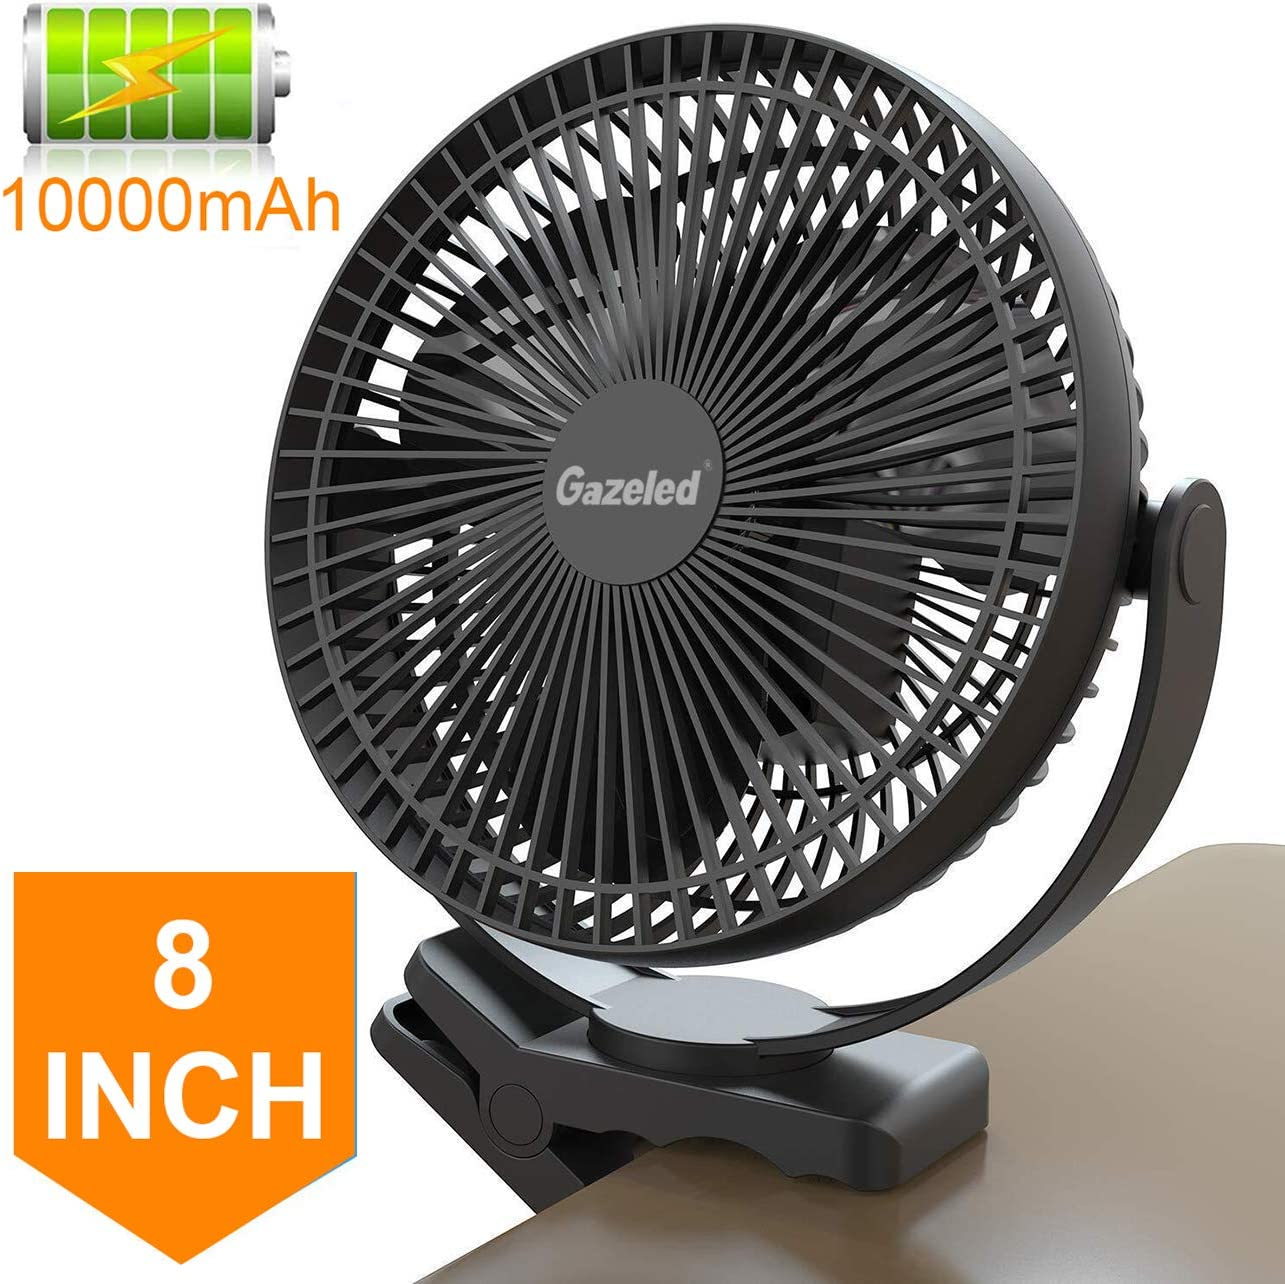 Clip Fan Battery Operated, 8 Inch 10000mAh Rechargeable Fan for Baby, 4 Speeds & 10W Fast Charging, Portable Cooling USB Fan for Baby Stroller Office Golf Cart Car Gym Treadmill,2 in 1 Desk&Clip Fan